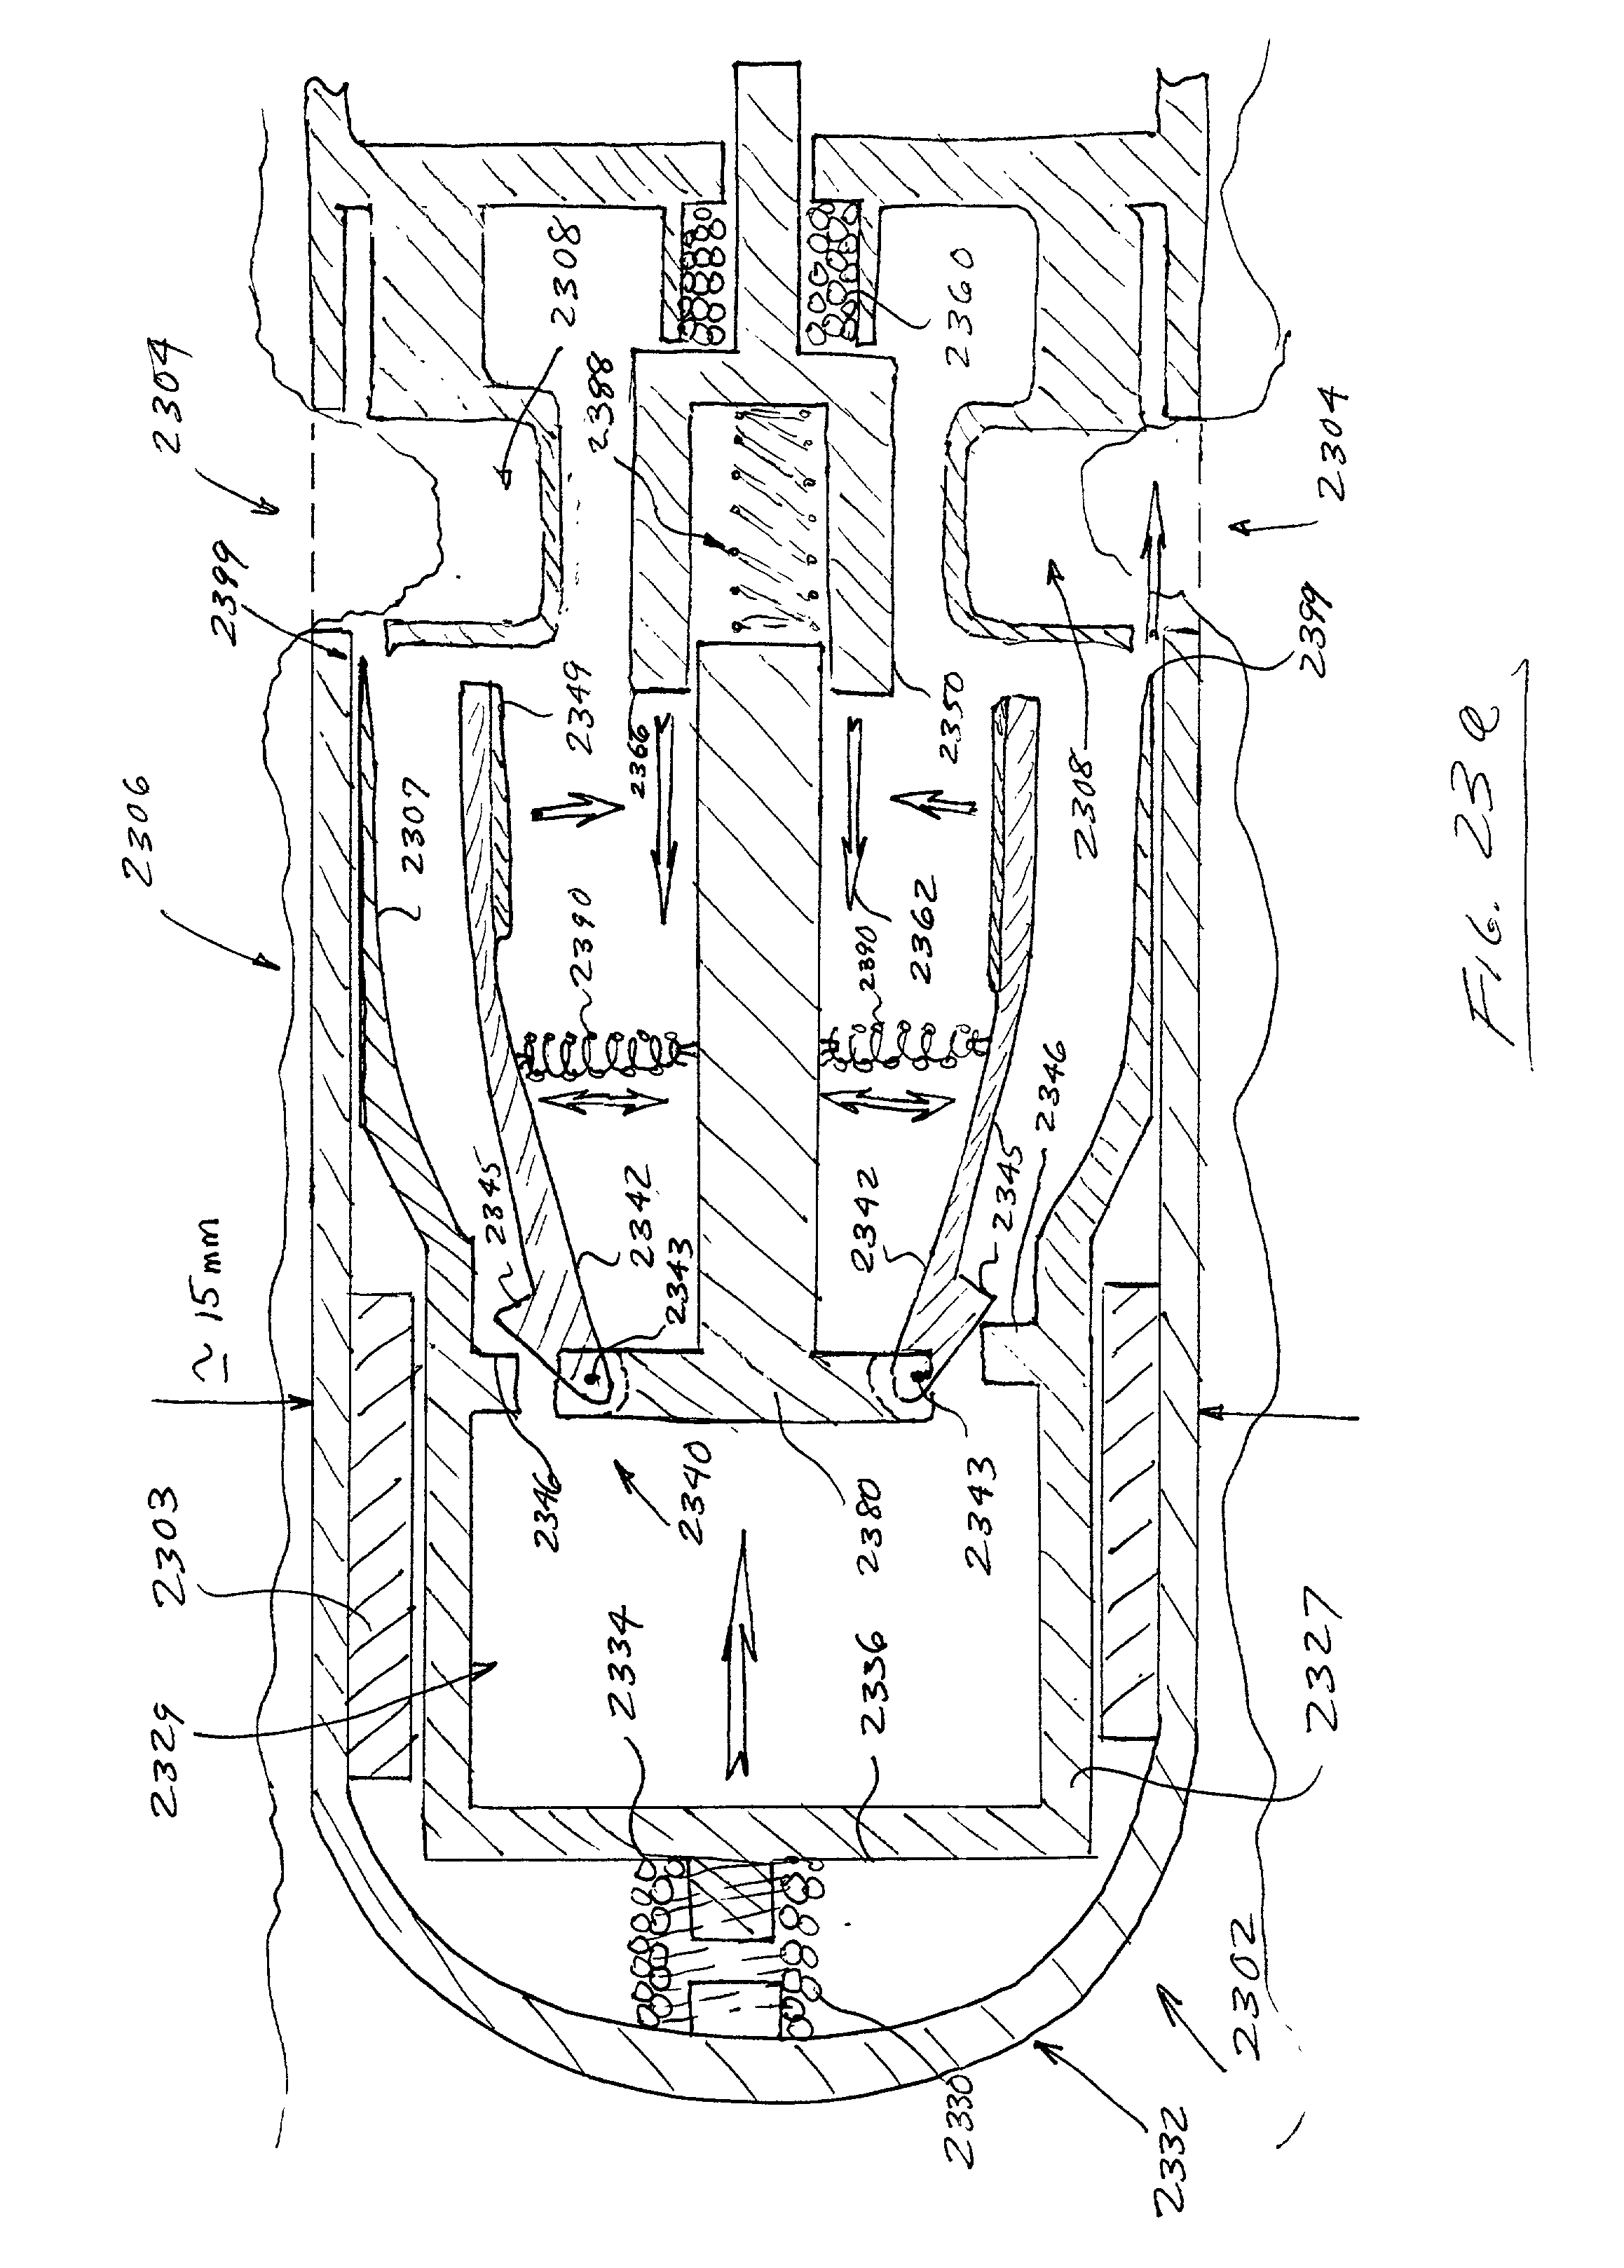 Honda Cm200t Wiring Diagram Trusted Online As Well 650 Yamaha Motorcycle Diagrams On Library 1981 Specs